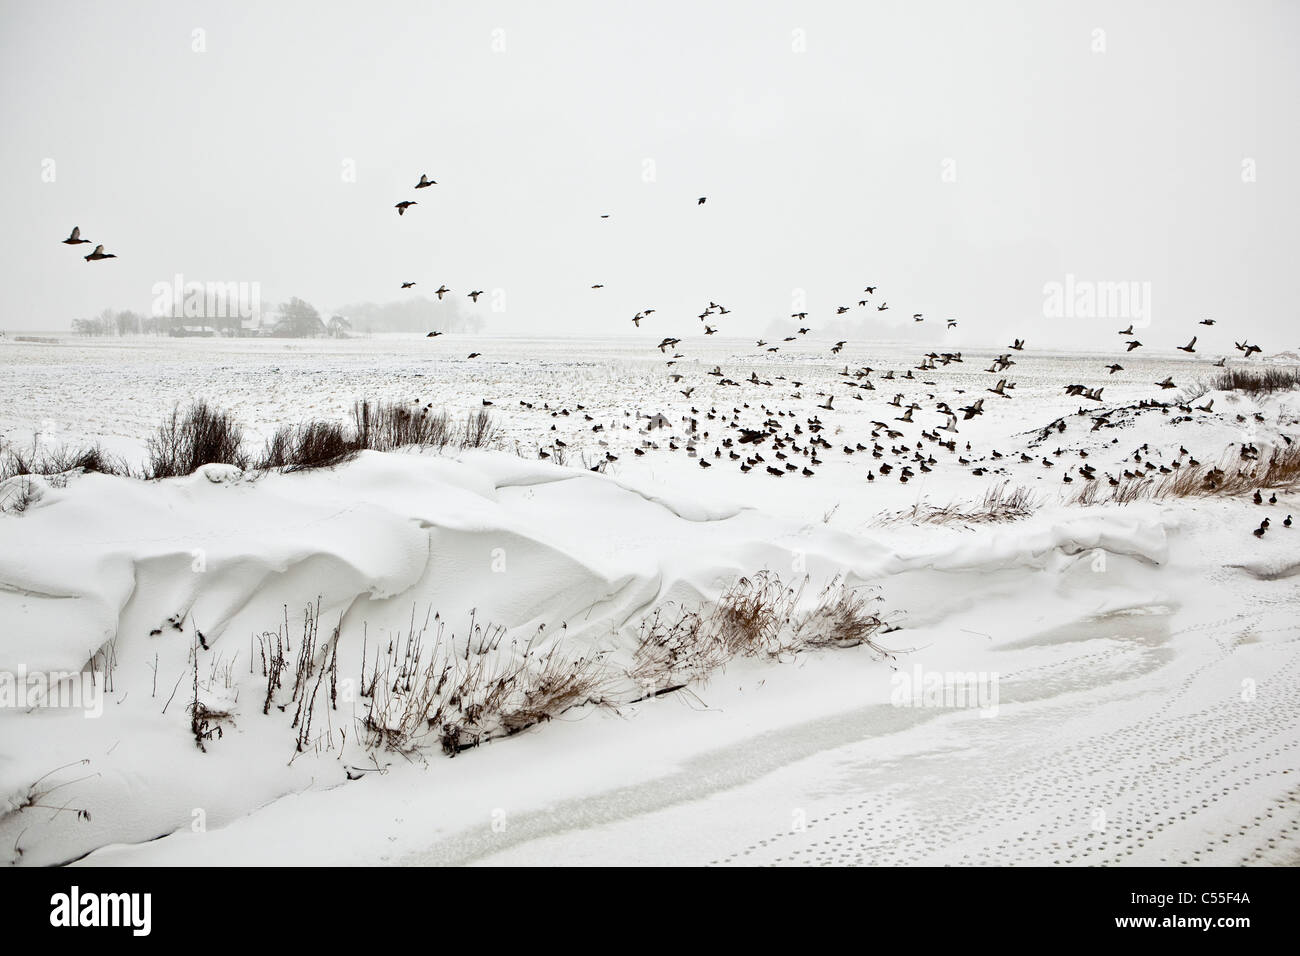 The Netherlands, Usquert, Snow in canal with farm in background. Ducks flying - Stock Image